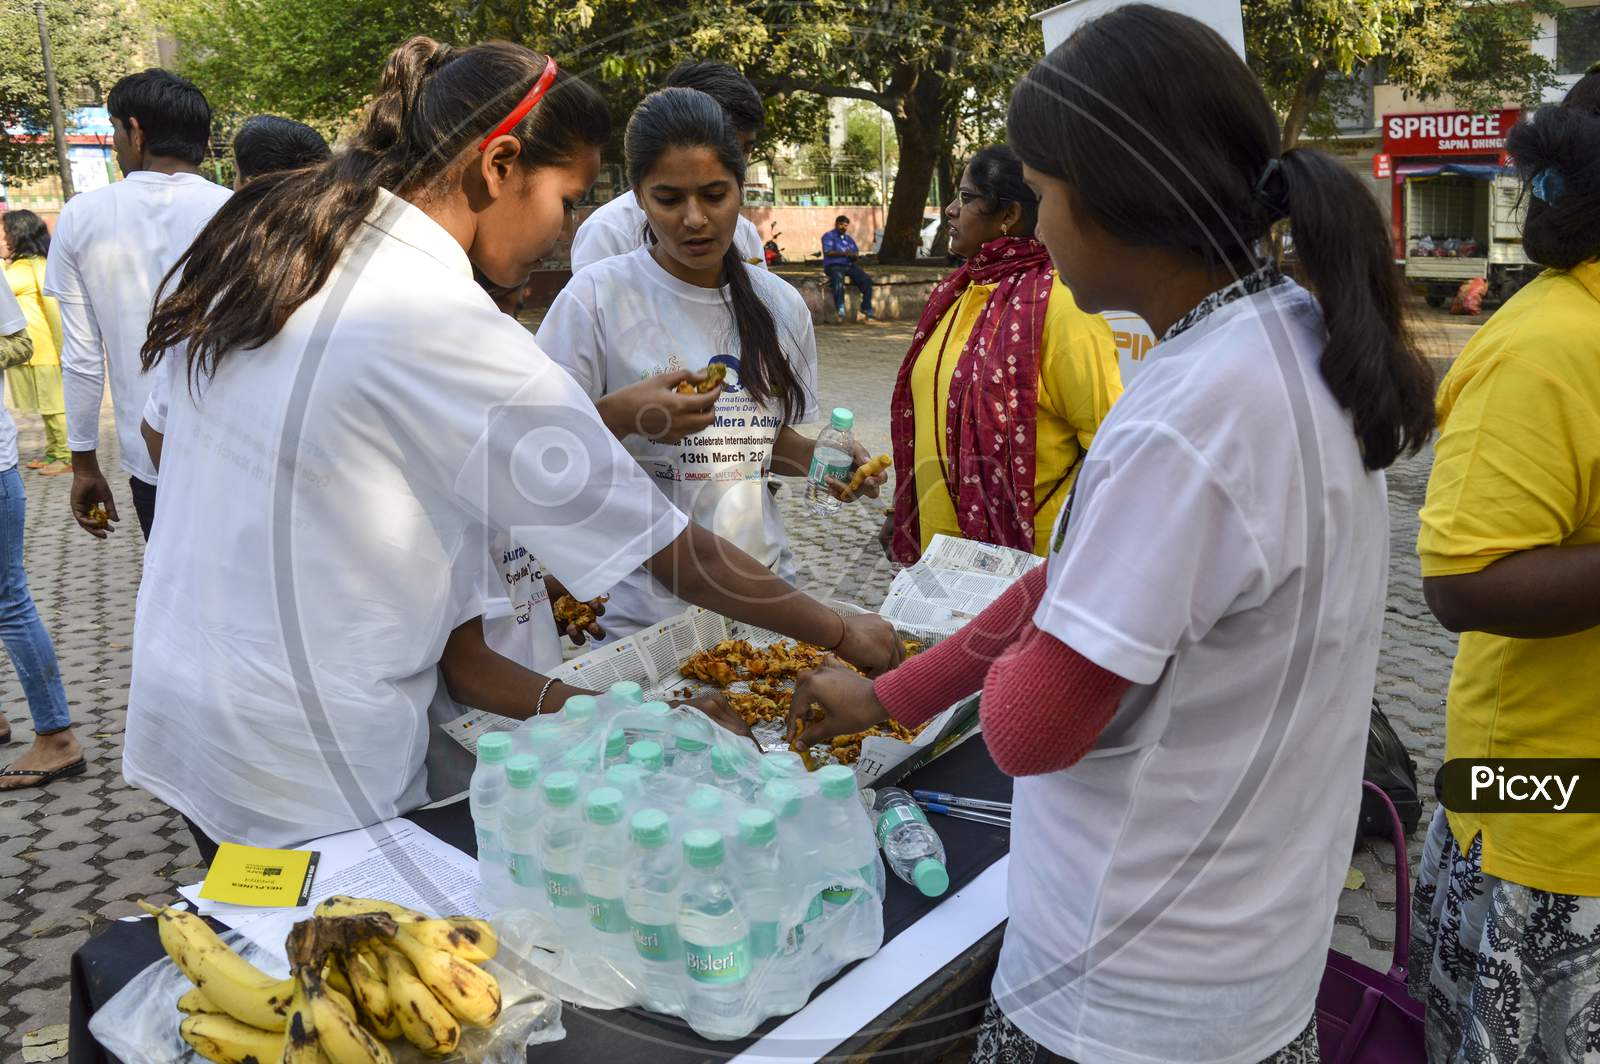 A Group Of Indian People Having The Food At Event For Support The Cycle Ride To Celebrate International Women'S Day.